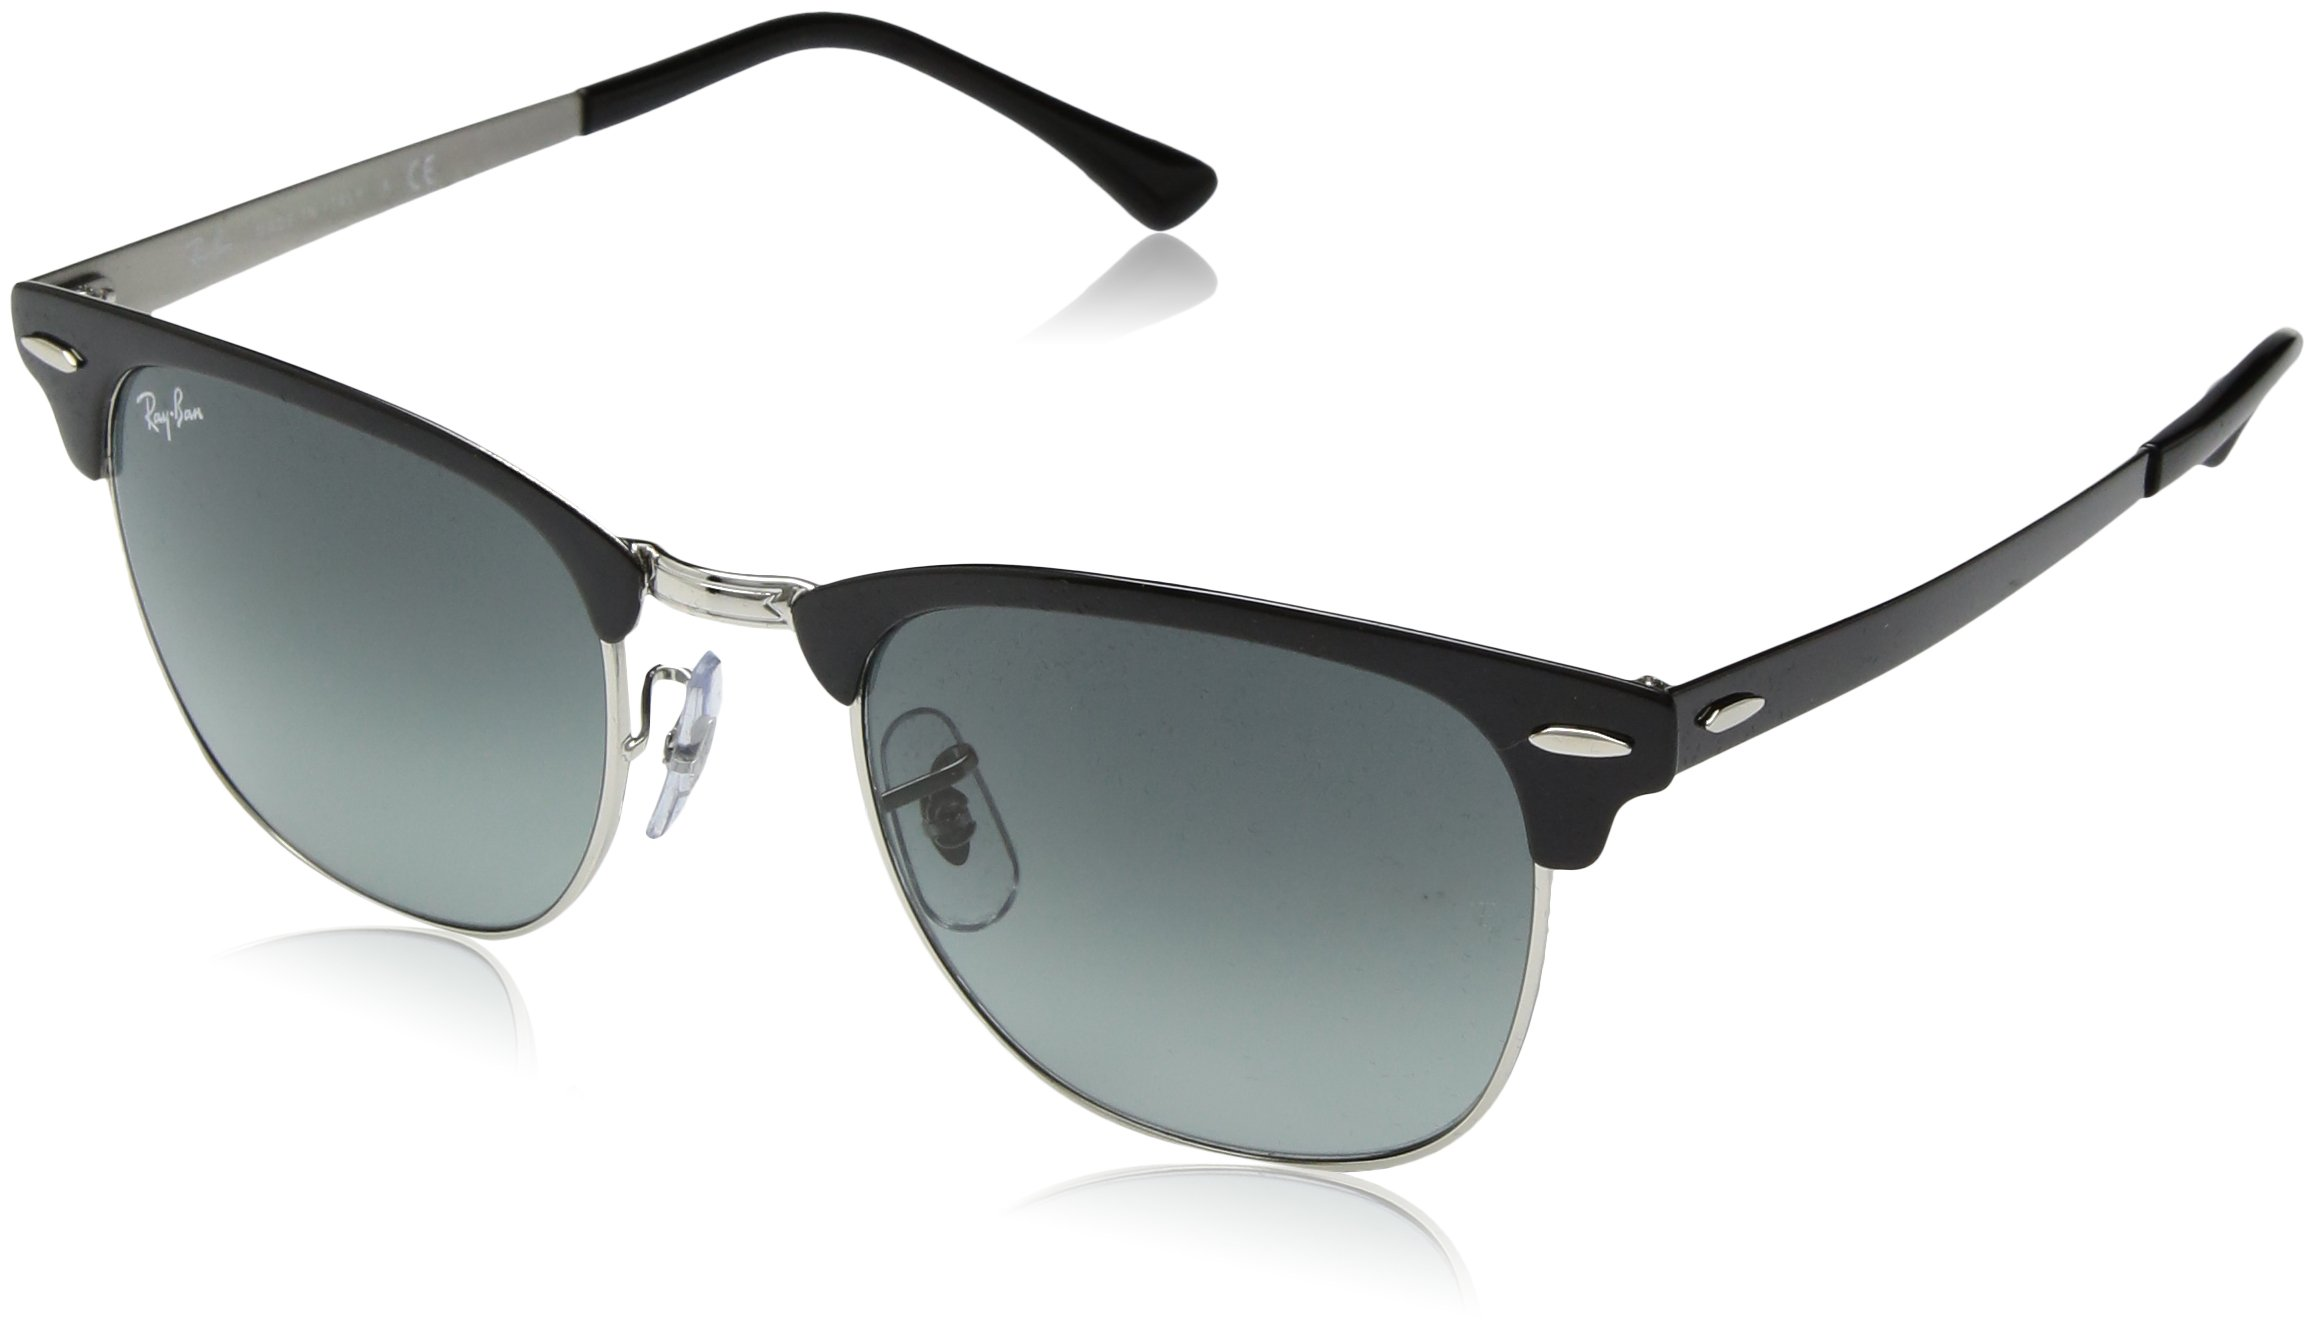 5a92df54c0 Ray-Ban Clubmaster RB3716 9004 71 51mm Silver Top Black   Grey Gradient Lens